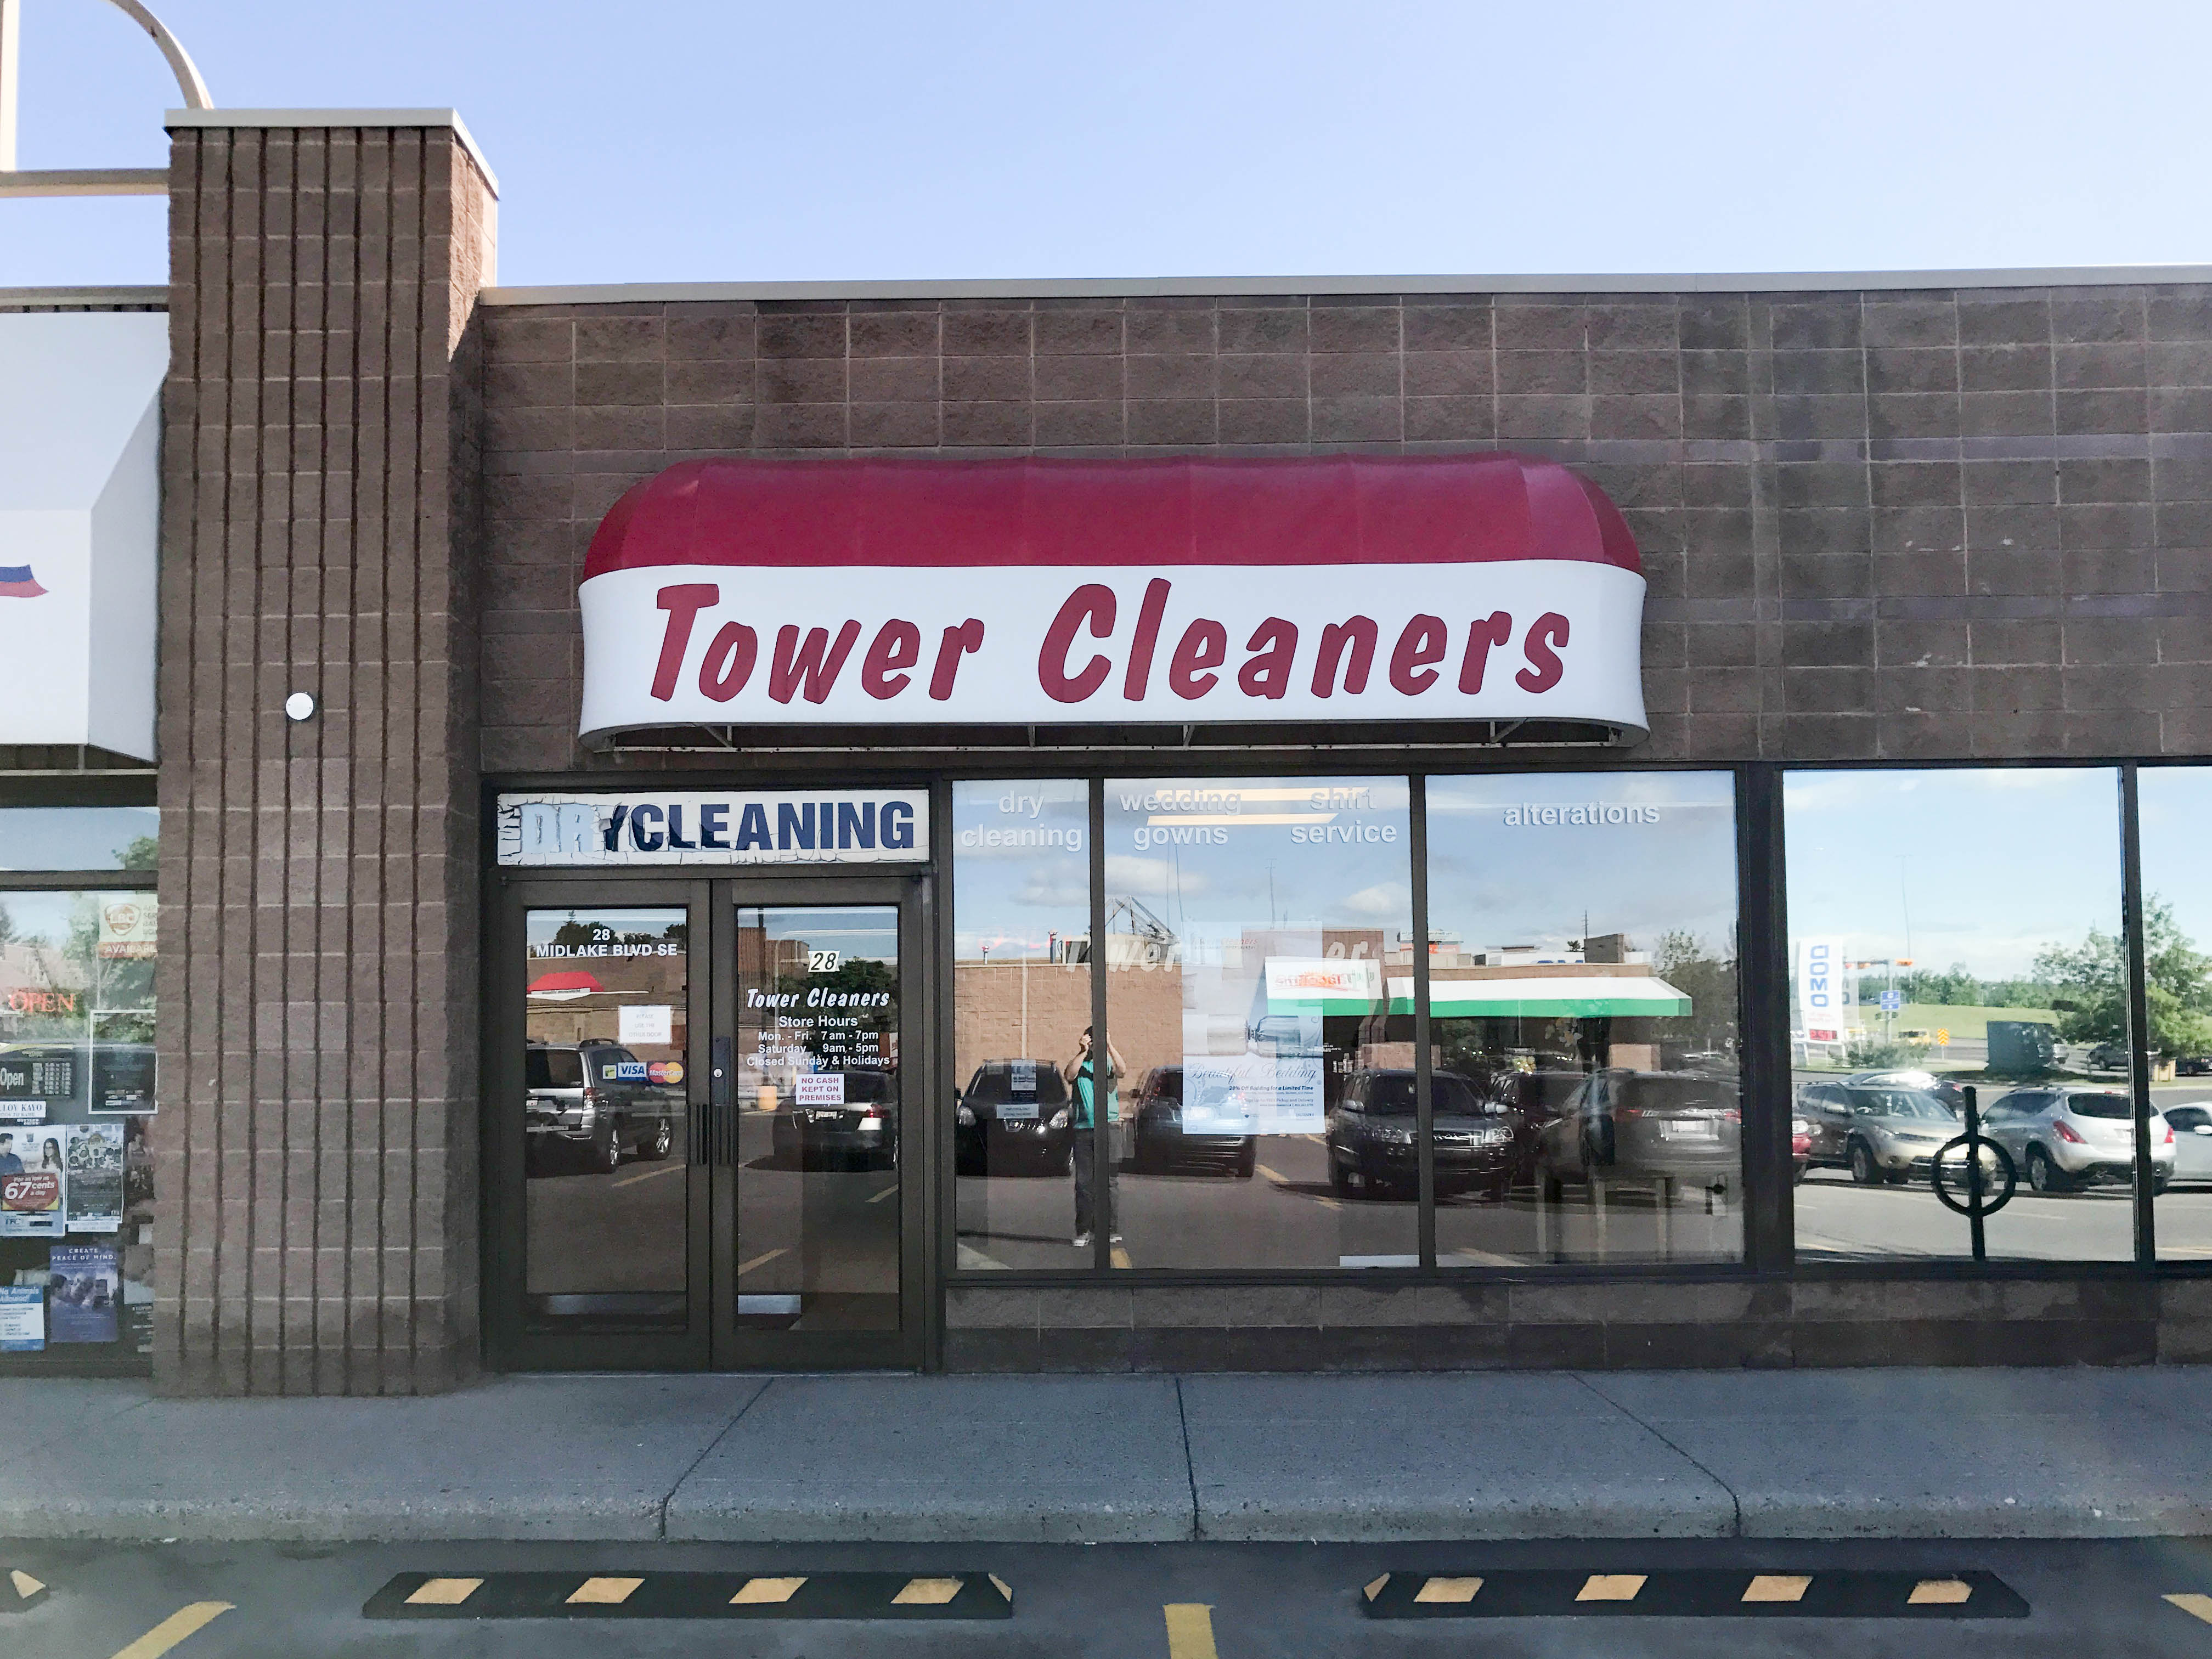 Midnapore Tower Cleaners store. 28 Midlake Blvd SE, Calgary, Alberta, (403) 256-1771